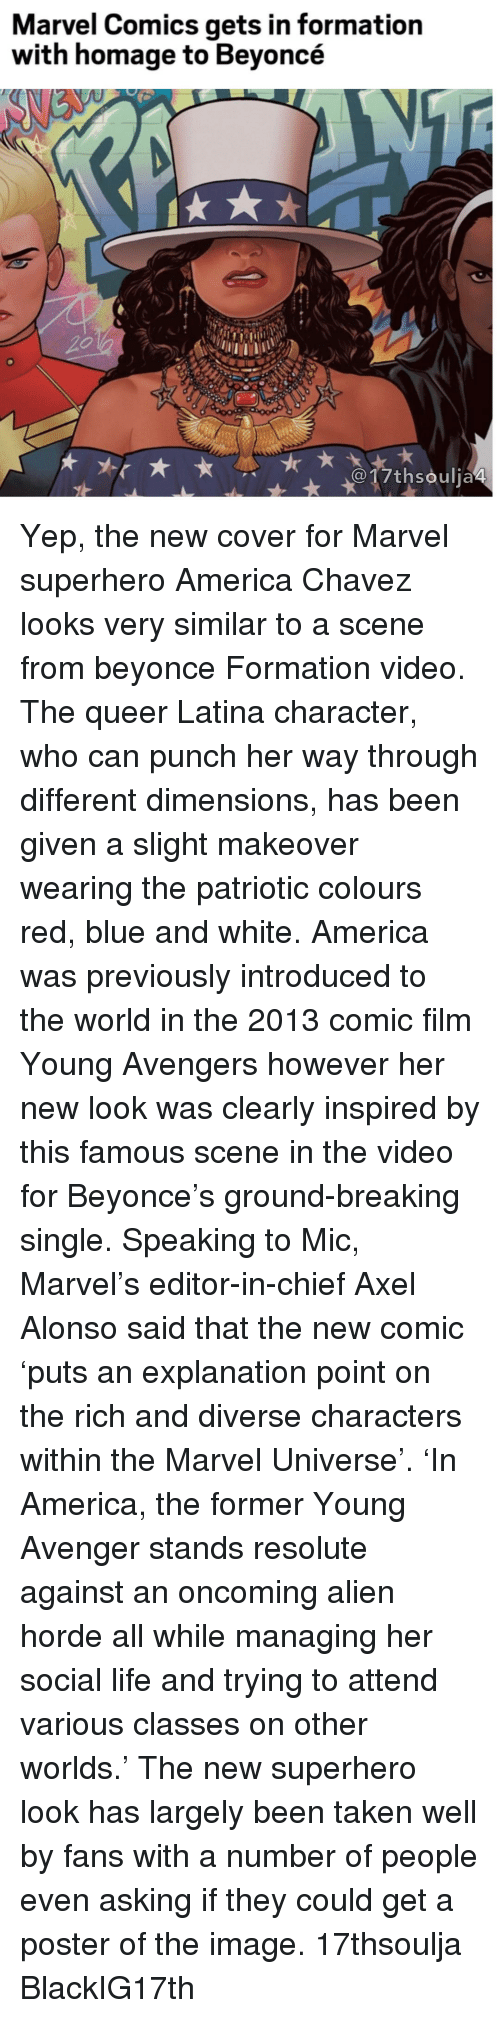 resolute: Marvel Comics gets in formation  with homage to Beyoncé  017th soulja4 Yep, the new cover for Marvel superhero America Chavez looks very similar to a scene from beyonce Formation video. The queer Latina character, who can punch her way through different dimensions, has been given a slight makeover wearing the patriotic colours red, blue and white. America was previously introduced to the world in the 2013 comic film Young Avengers however her new look was clearly inspired by this famous scene in the video for Beyonce's ground-breaking single. Speaking to Mic, Marvel's editor-in-chief Axel Alonso said that the new comic 'puts an explanation point on the rich and diverse characters within the Marvel Universe'. 'In America, the former Young Avenger stands resolute against an oncoming alien horde all while managing her social life and trying to attend various classes on other worlds.' The new superhero look has largely been taken well by fans with a number of people even asking if they could get a poster of the image. 17thsoulja BlackIG17th